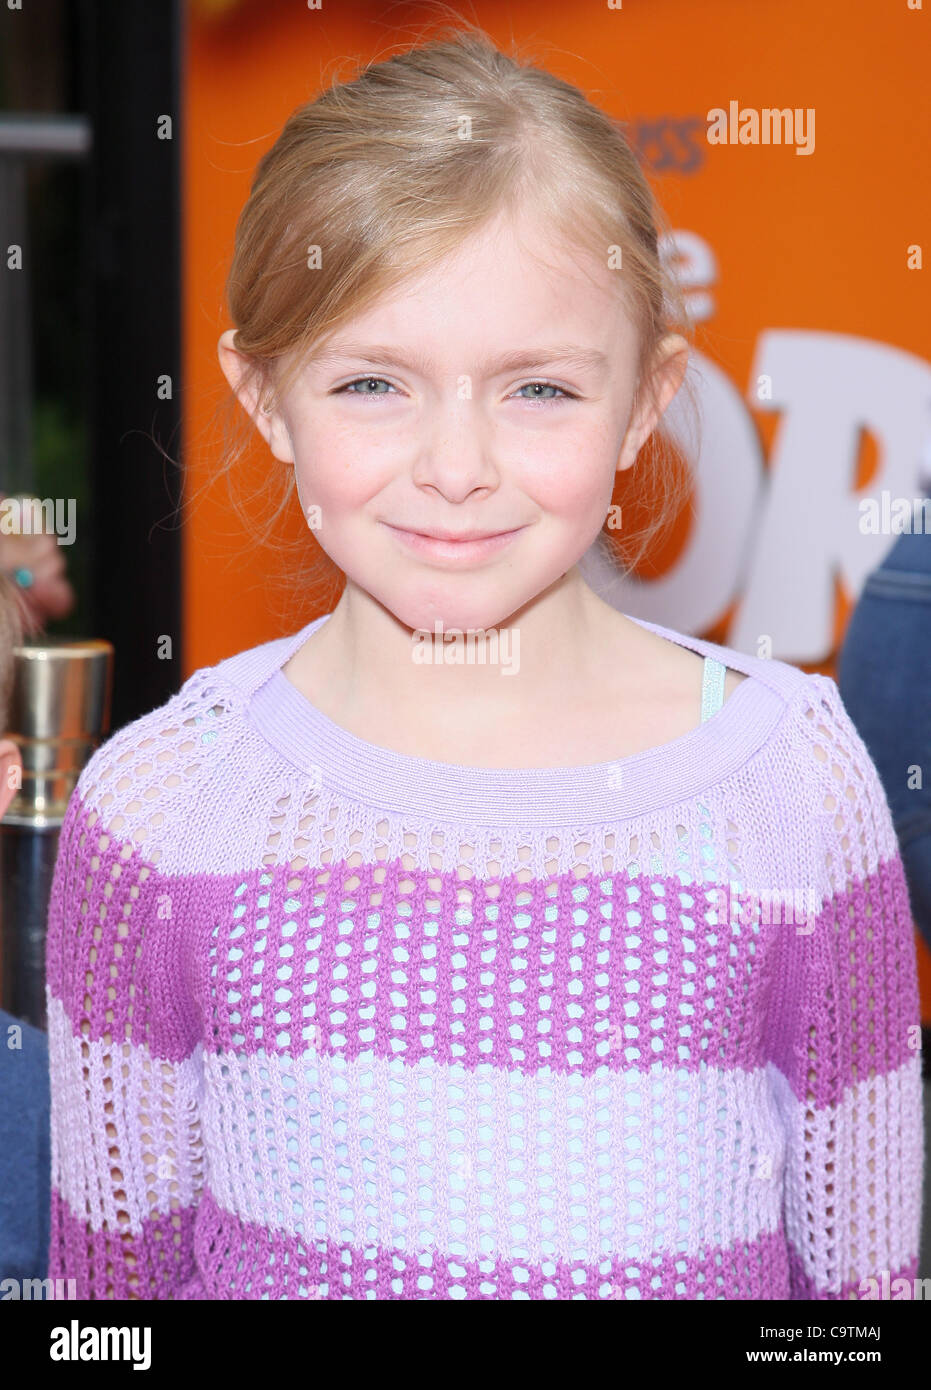 ELSIE FISHER DR. SEUSS' THE LORAX. WORLD PREMIERE UNIVERSAL CITY LOS ANGELES CALIFORNIA USA 19 February 2012 - Stock Image